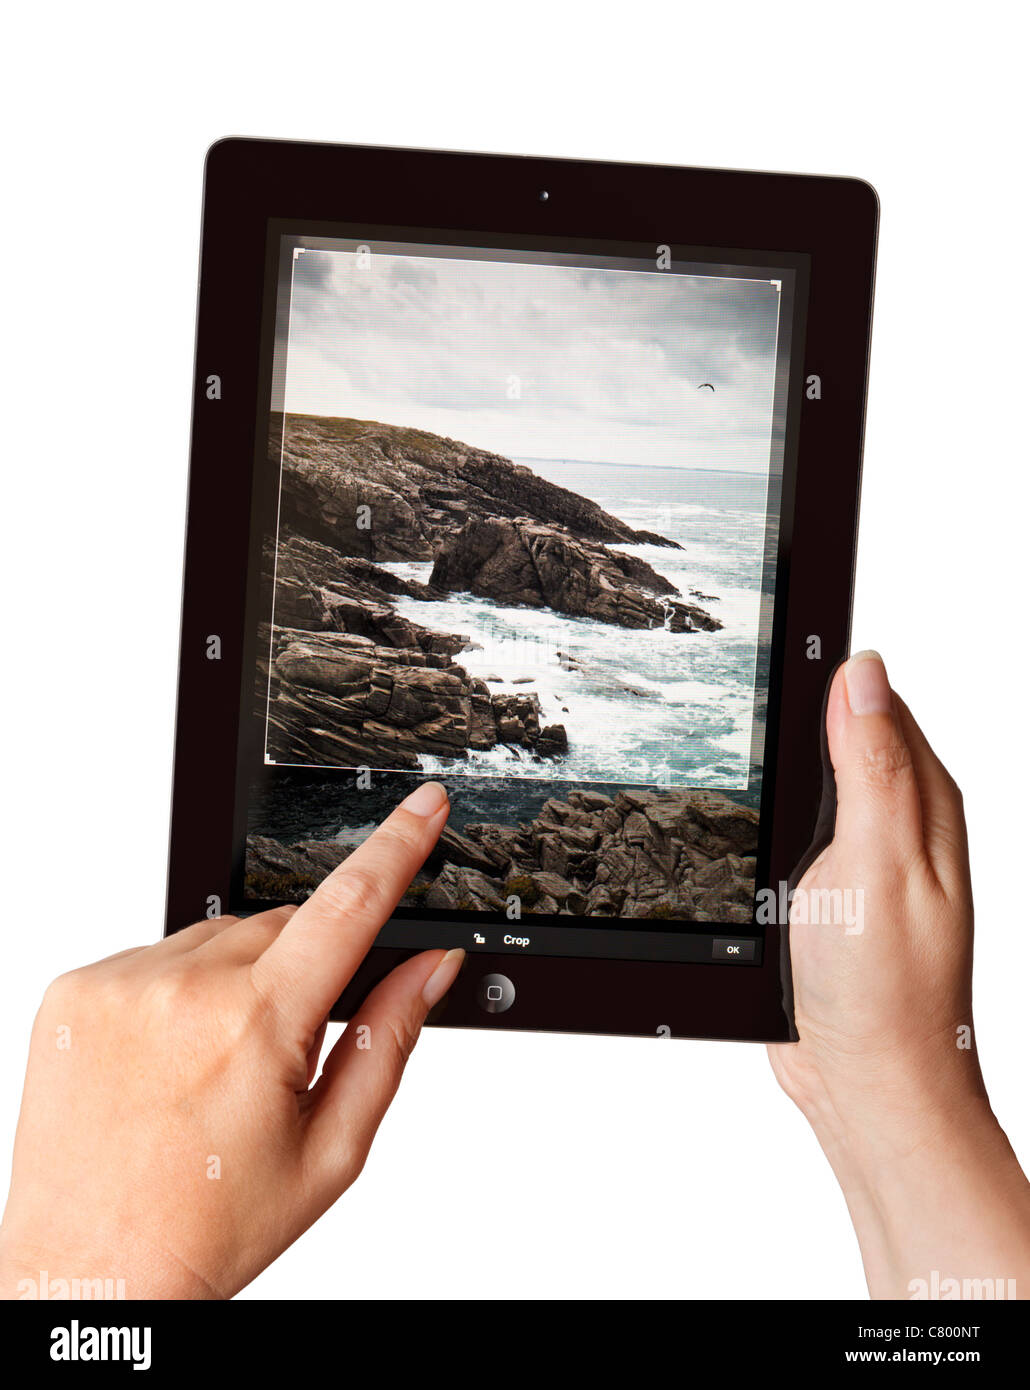 Hands holding an iPad2 using a Photoshop app to edit a photo Stock